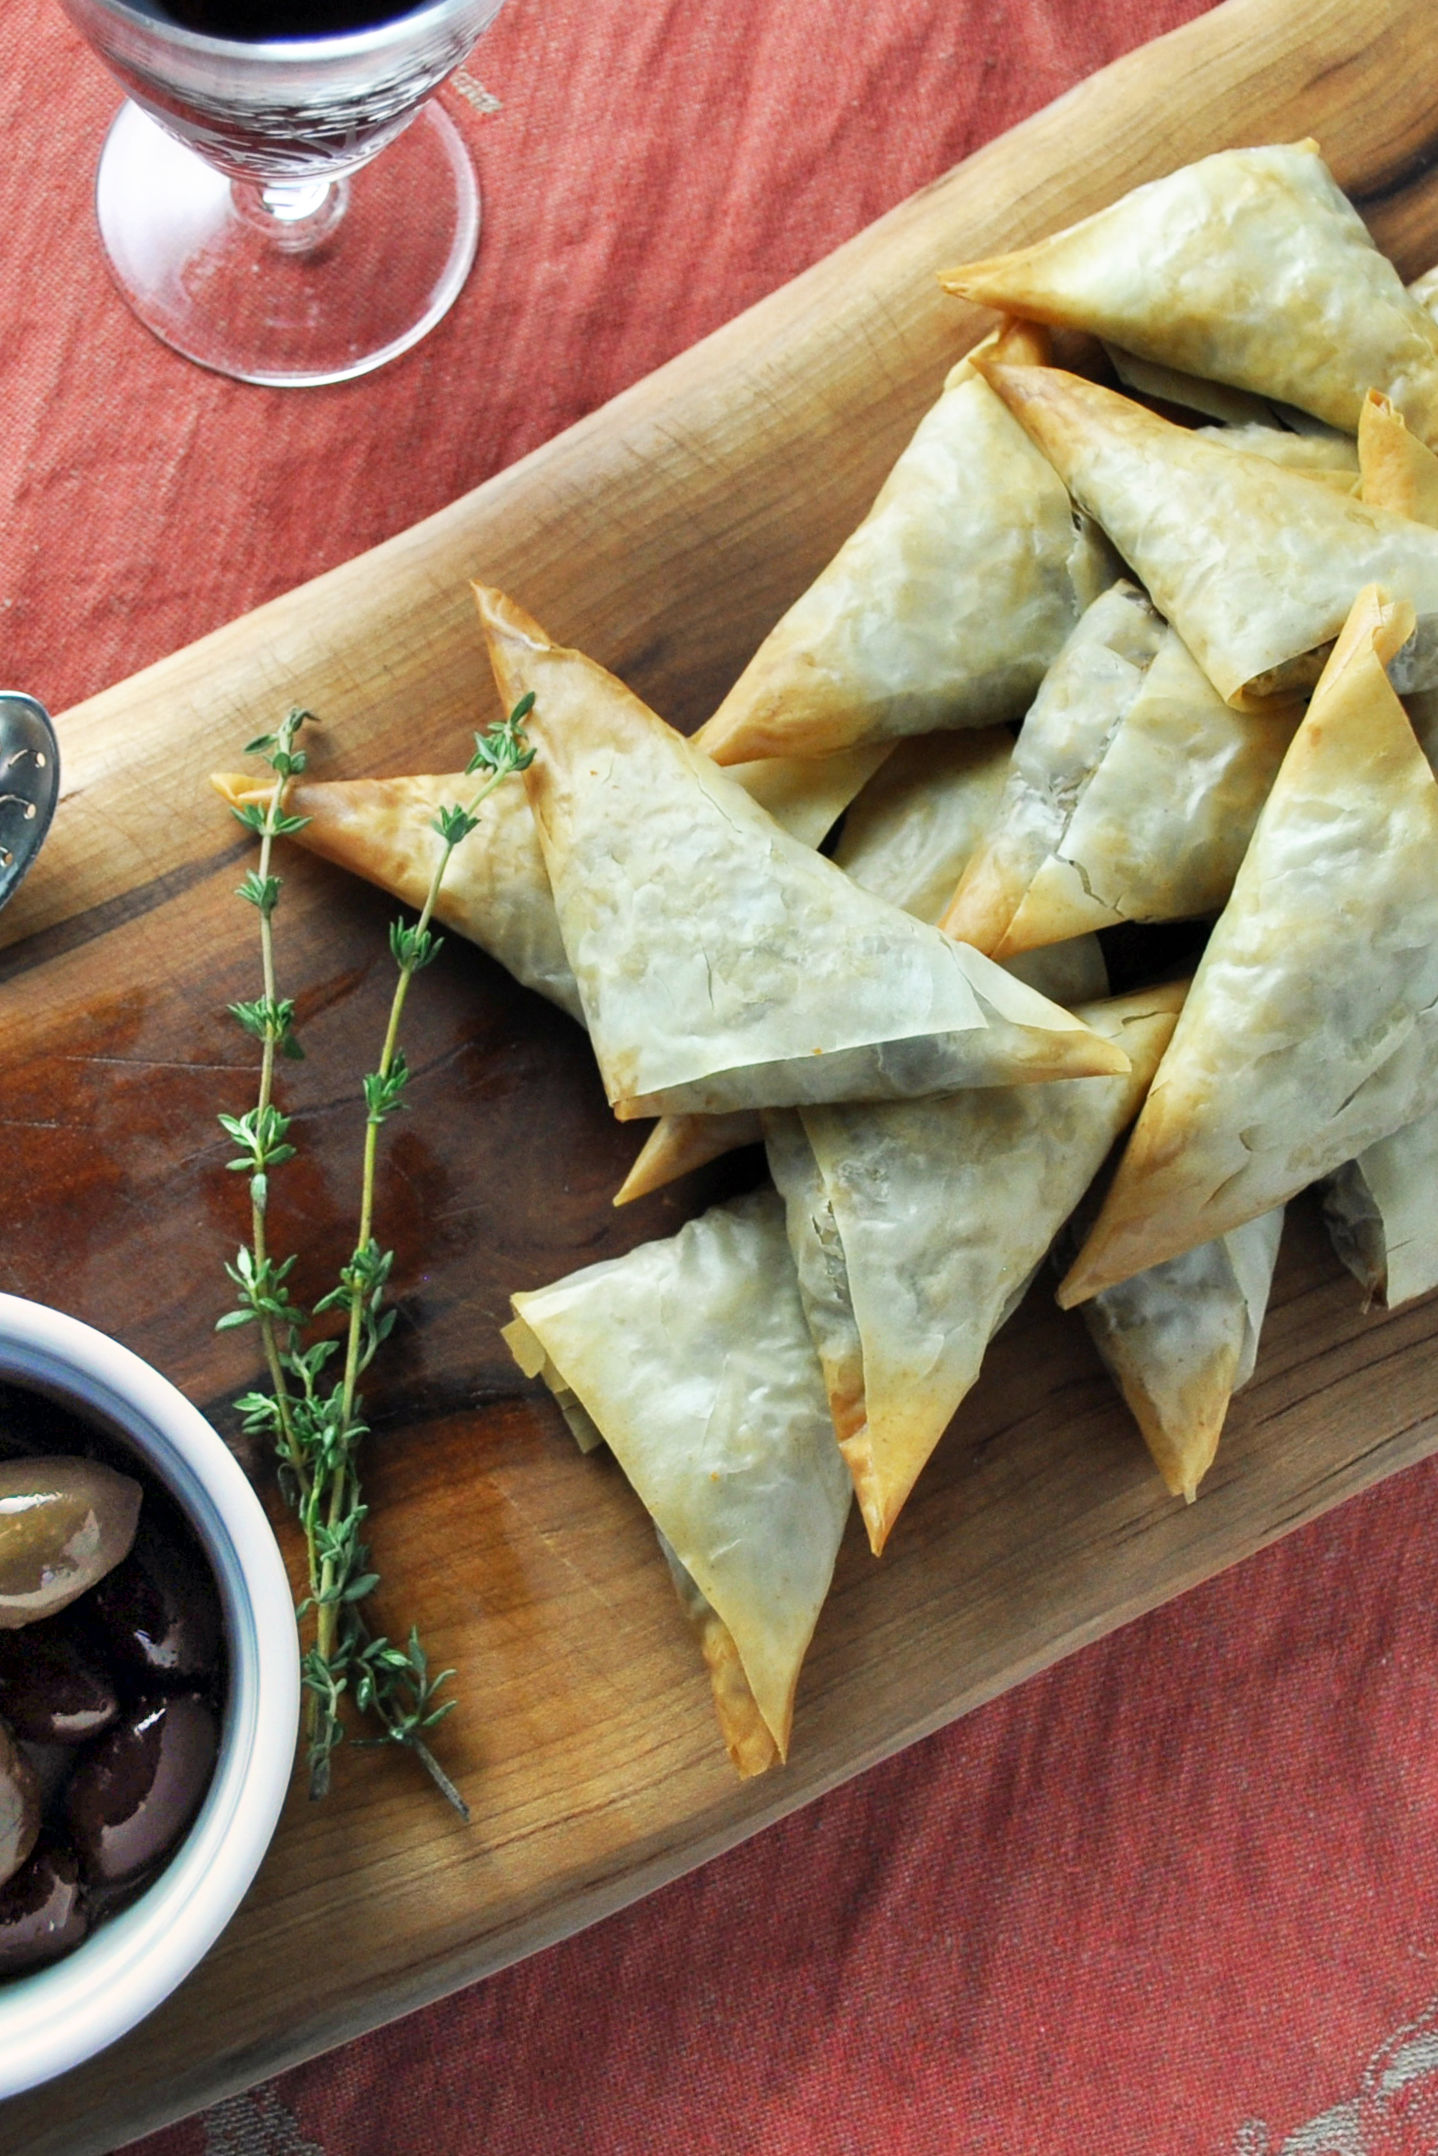 Master Phyllo Dough With This Easy Party Snack